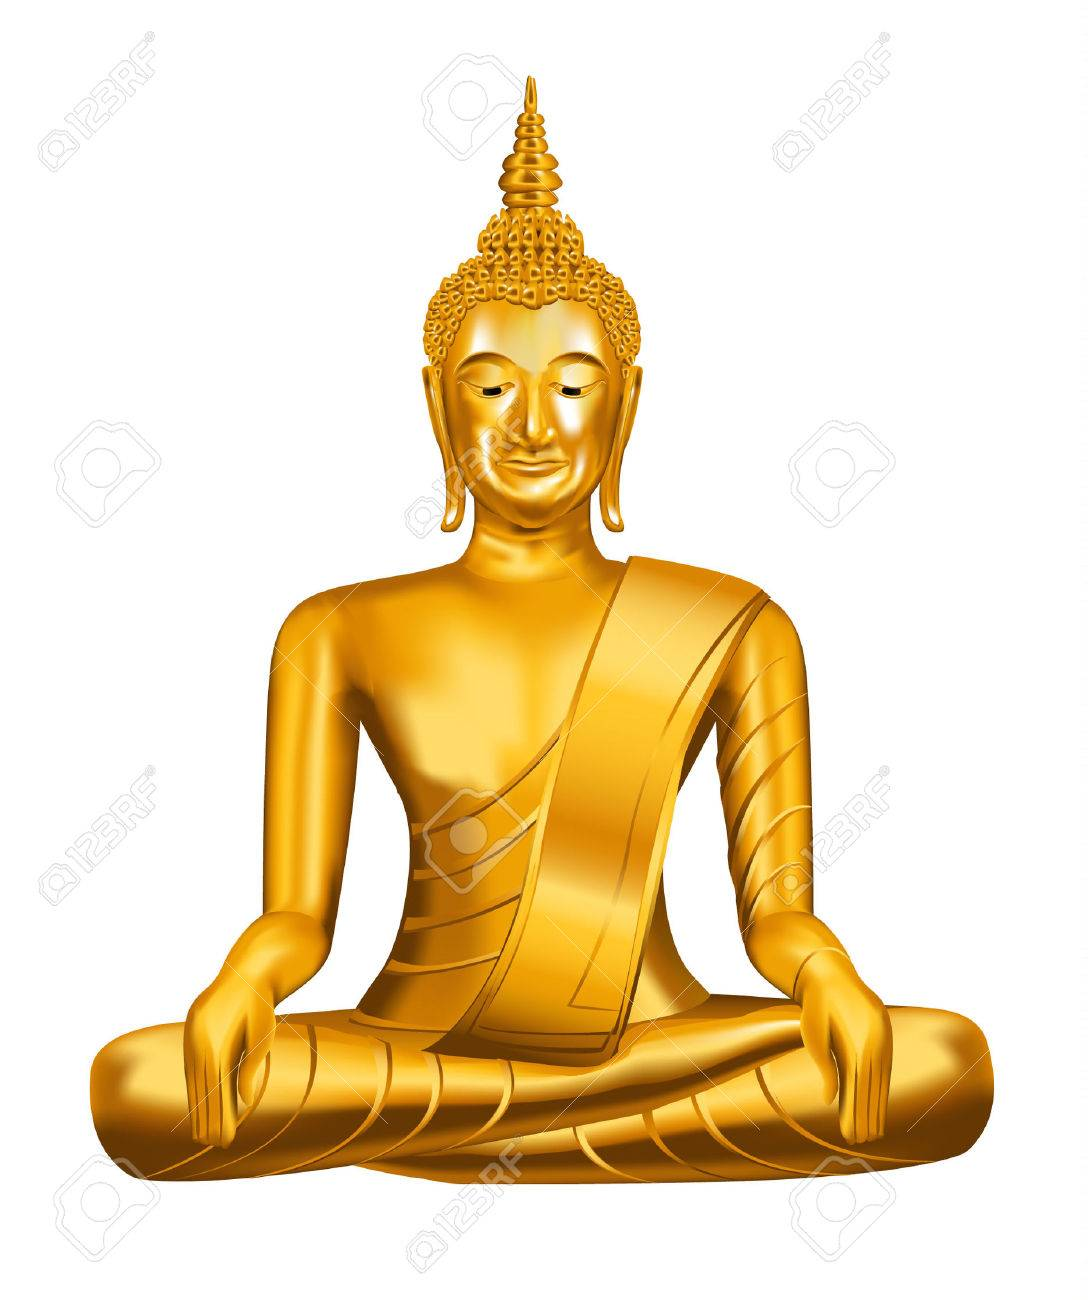 buddha vector royalty free cliparts vectors and stock rh 123rf com buddha vector free buddha vector silhouette